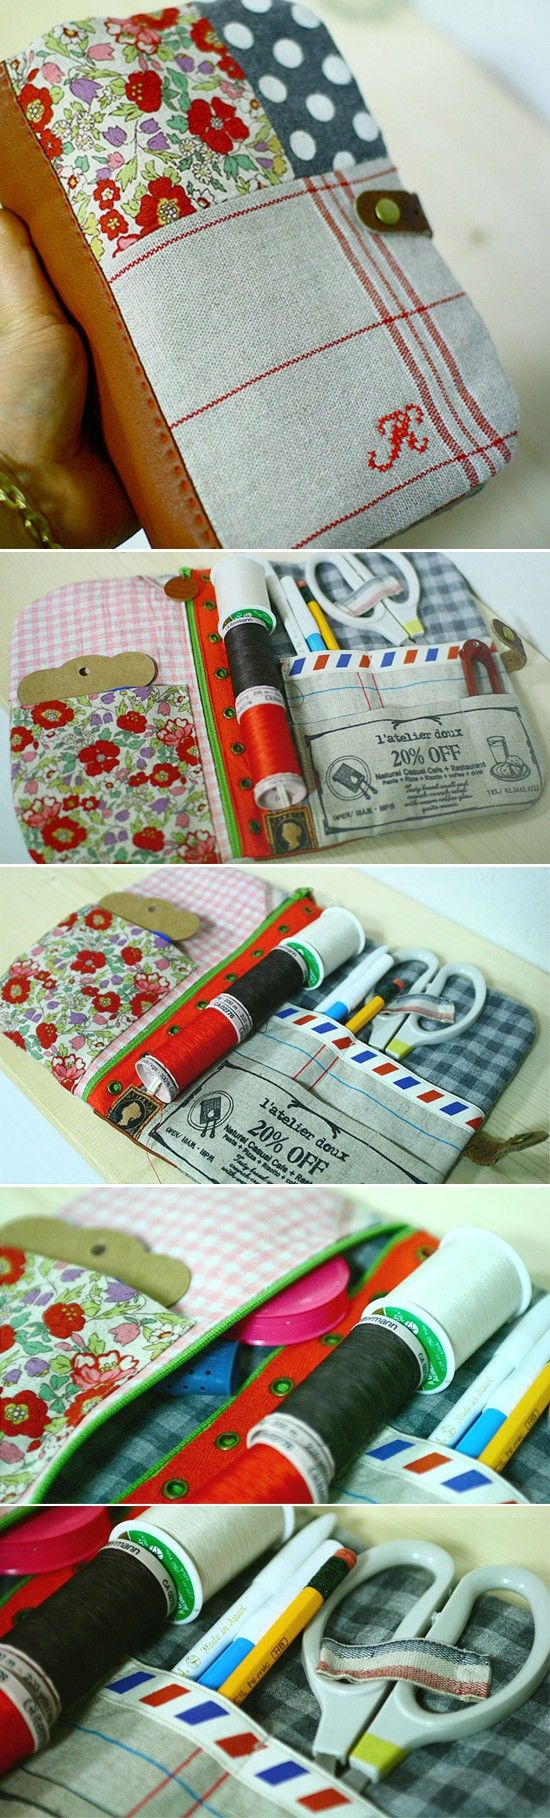 his cotton label will give you a lot of decoration ideas and make your stuff more beautiful and unique.  You can use them for various purposes, especially when you make something looking like vintage.  Great for scrapbooking, card making, wrapping gifts, fun school project, and much more.